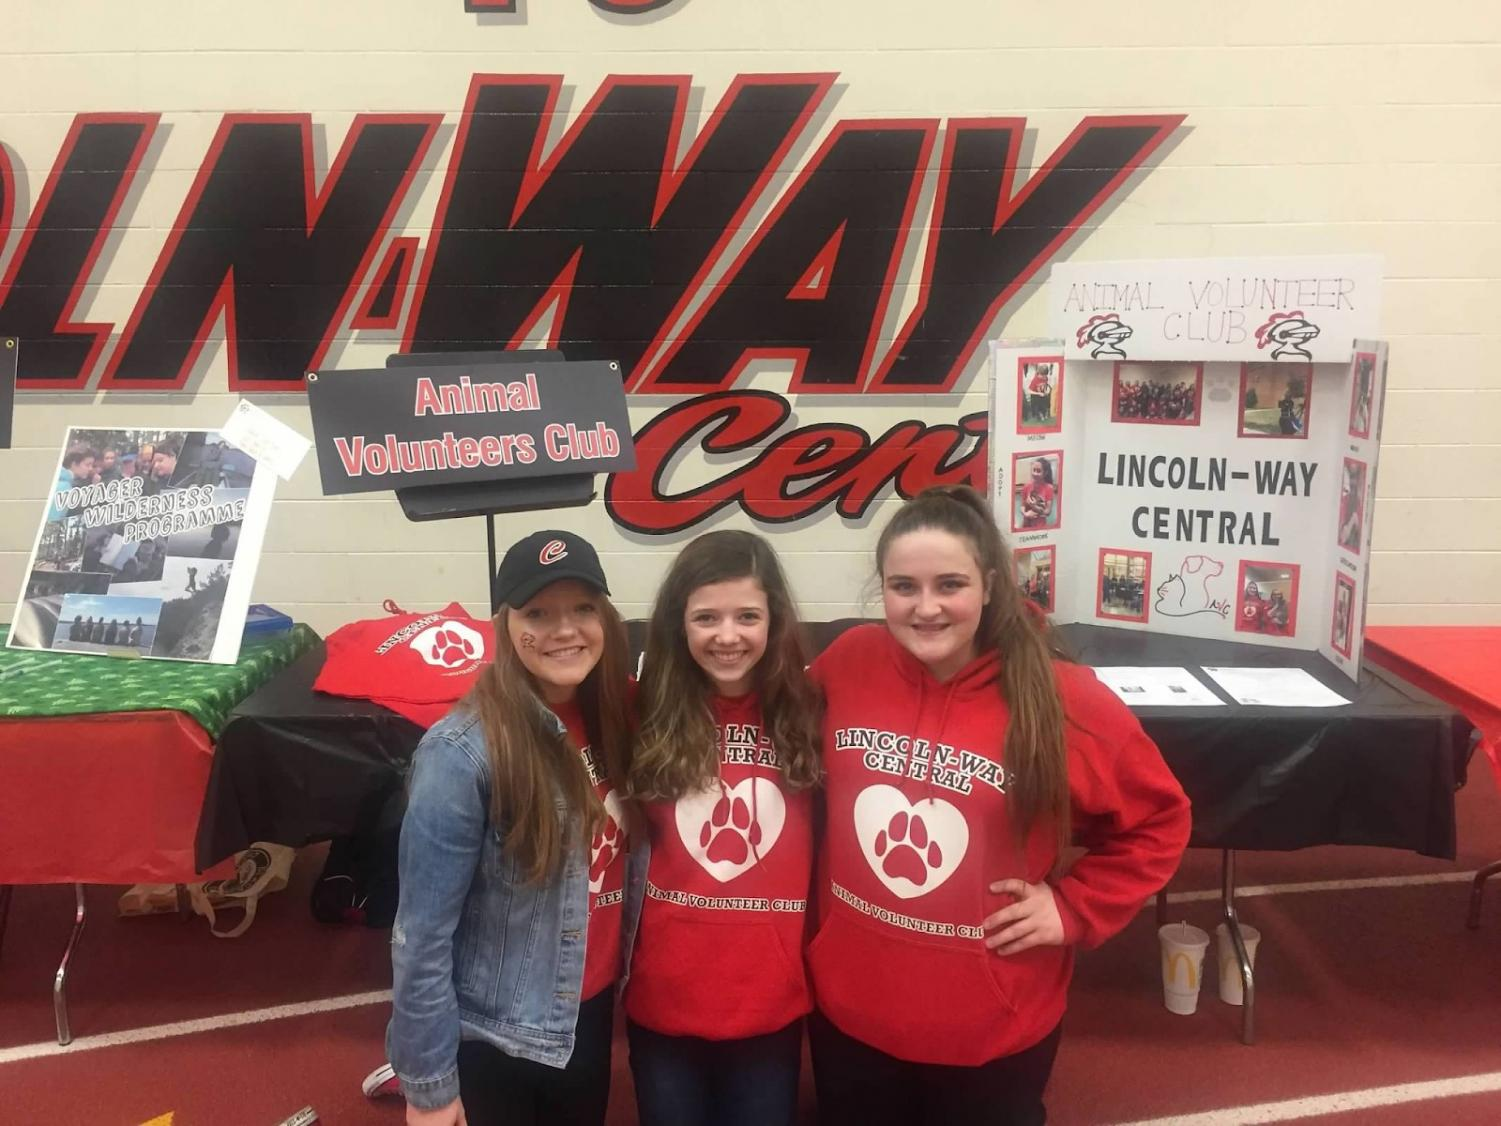 Animal Volunteer Club founders, Allison Twohig, Sarah Peters, and Kamryn Robustelli at the Freshman Open House